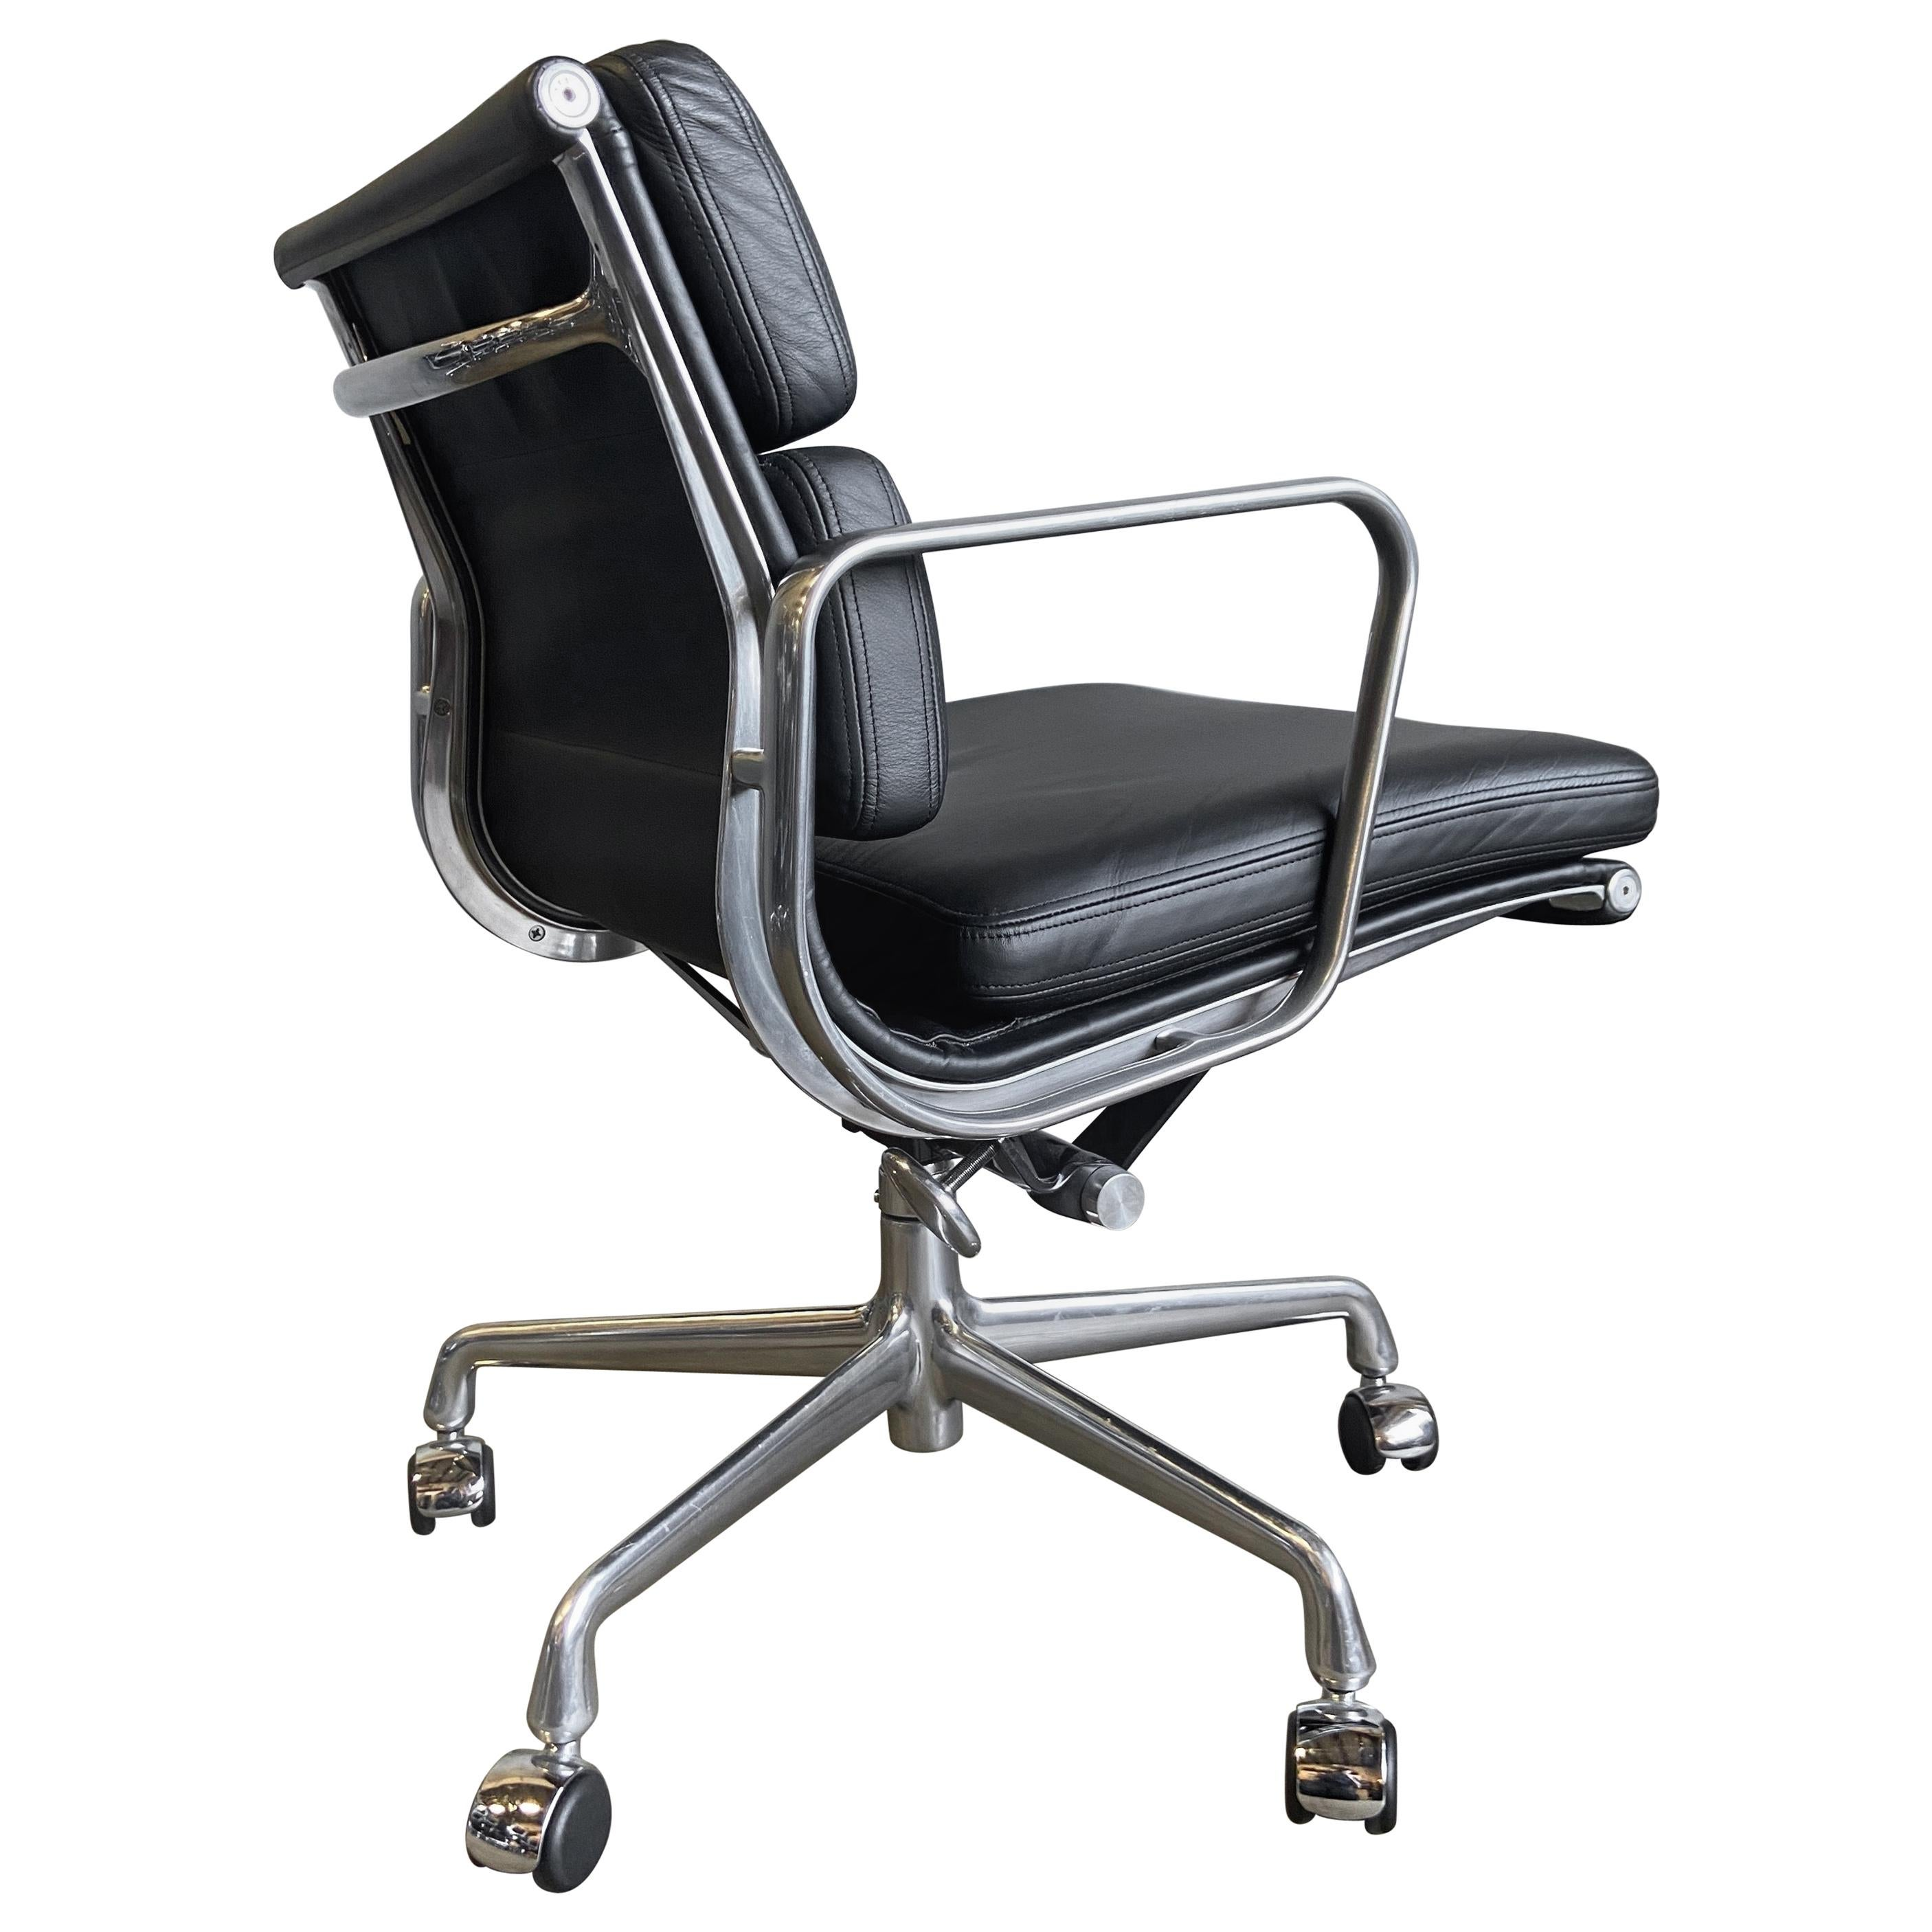 Midcentury Herman Miller Soft Pad Chairs in Black Leather New Old Stock